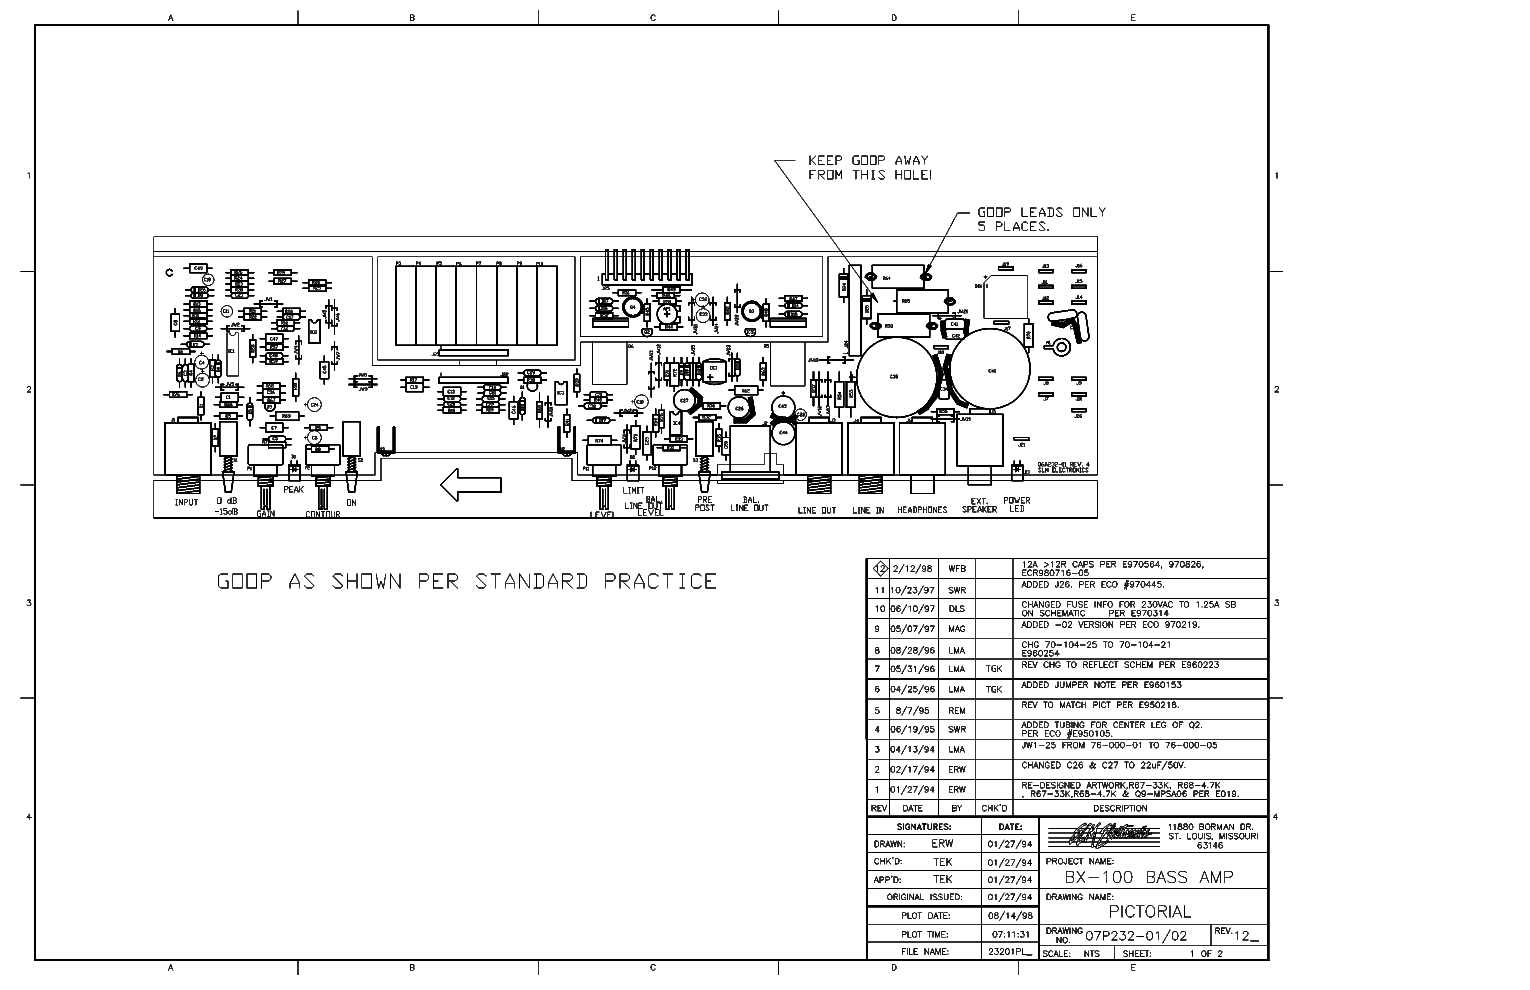 Slm Electronics Gt 50 Guitar Amp Service Manual Download Schematics Eeprom Repair Info For